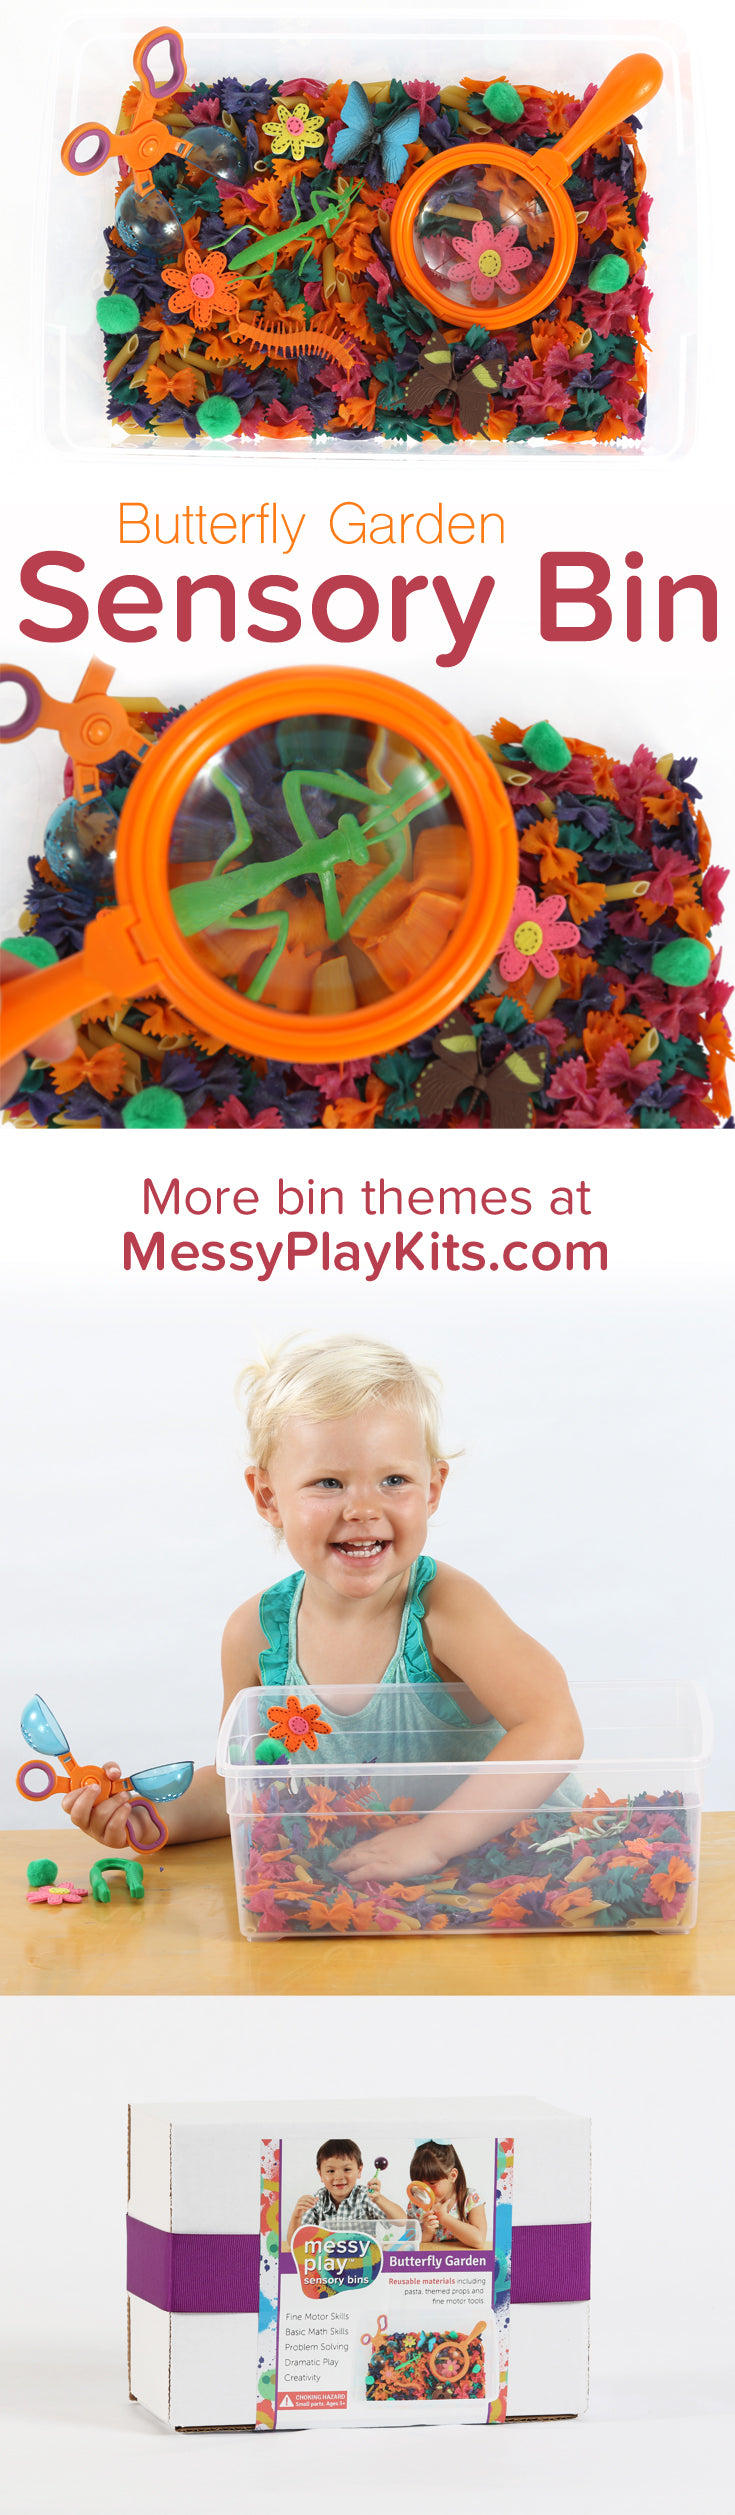 Butterfly Garden Sensory Bin from Messy Play Kits